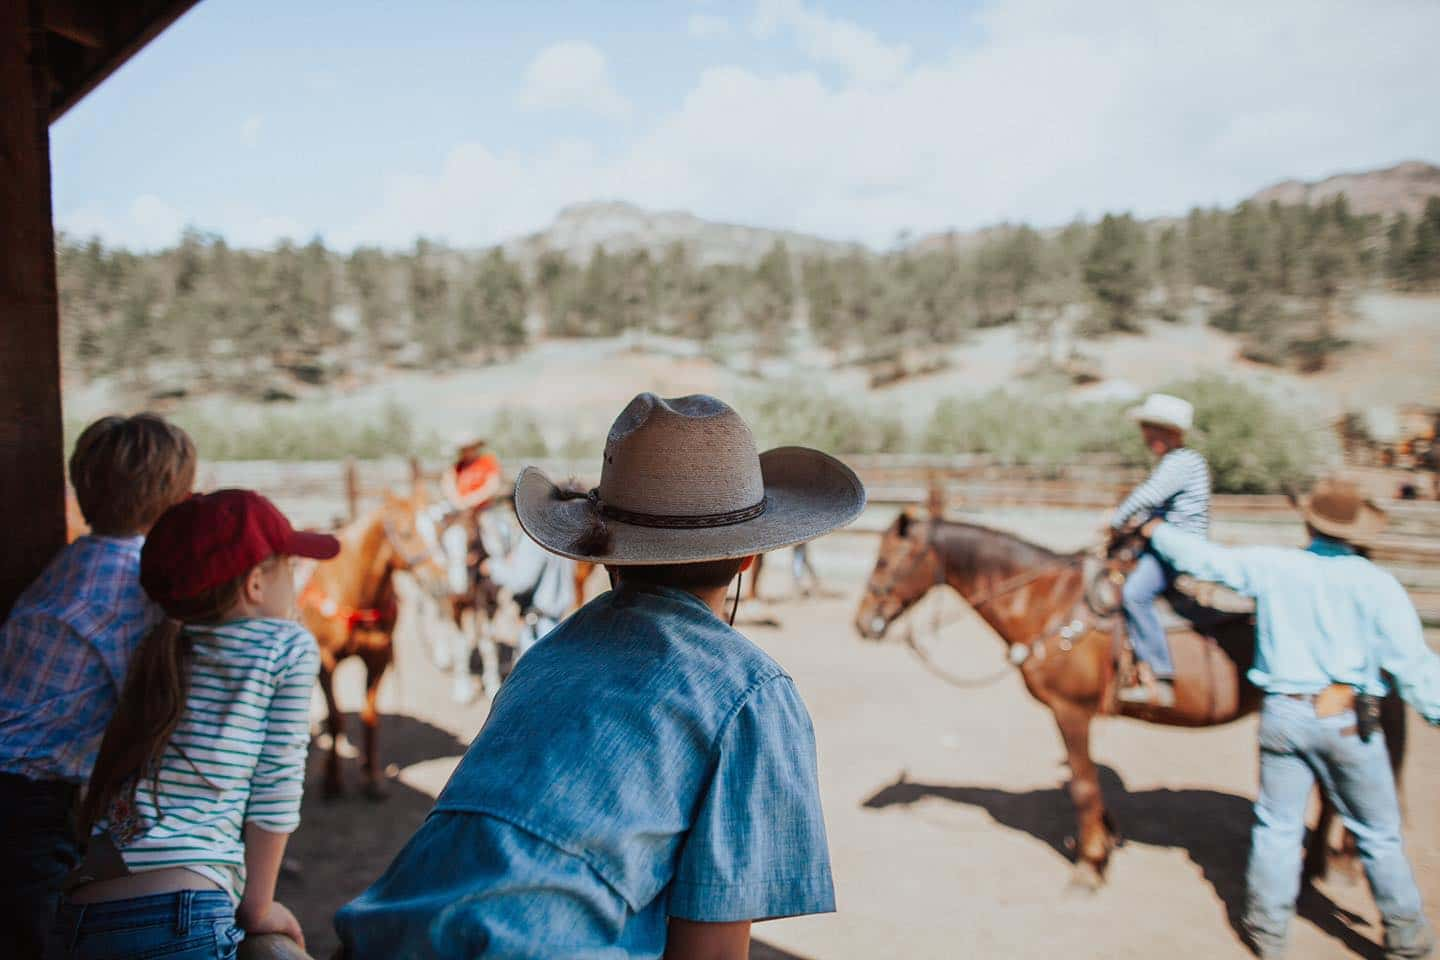 Image of kids watching people riding horses at Lost Valley Ranch in Sedalia, Colorado